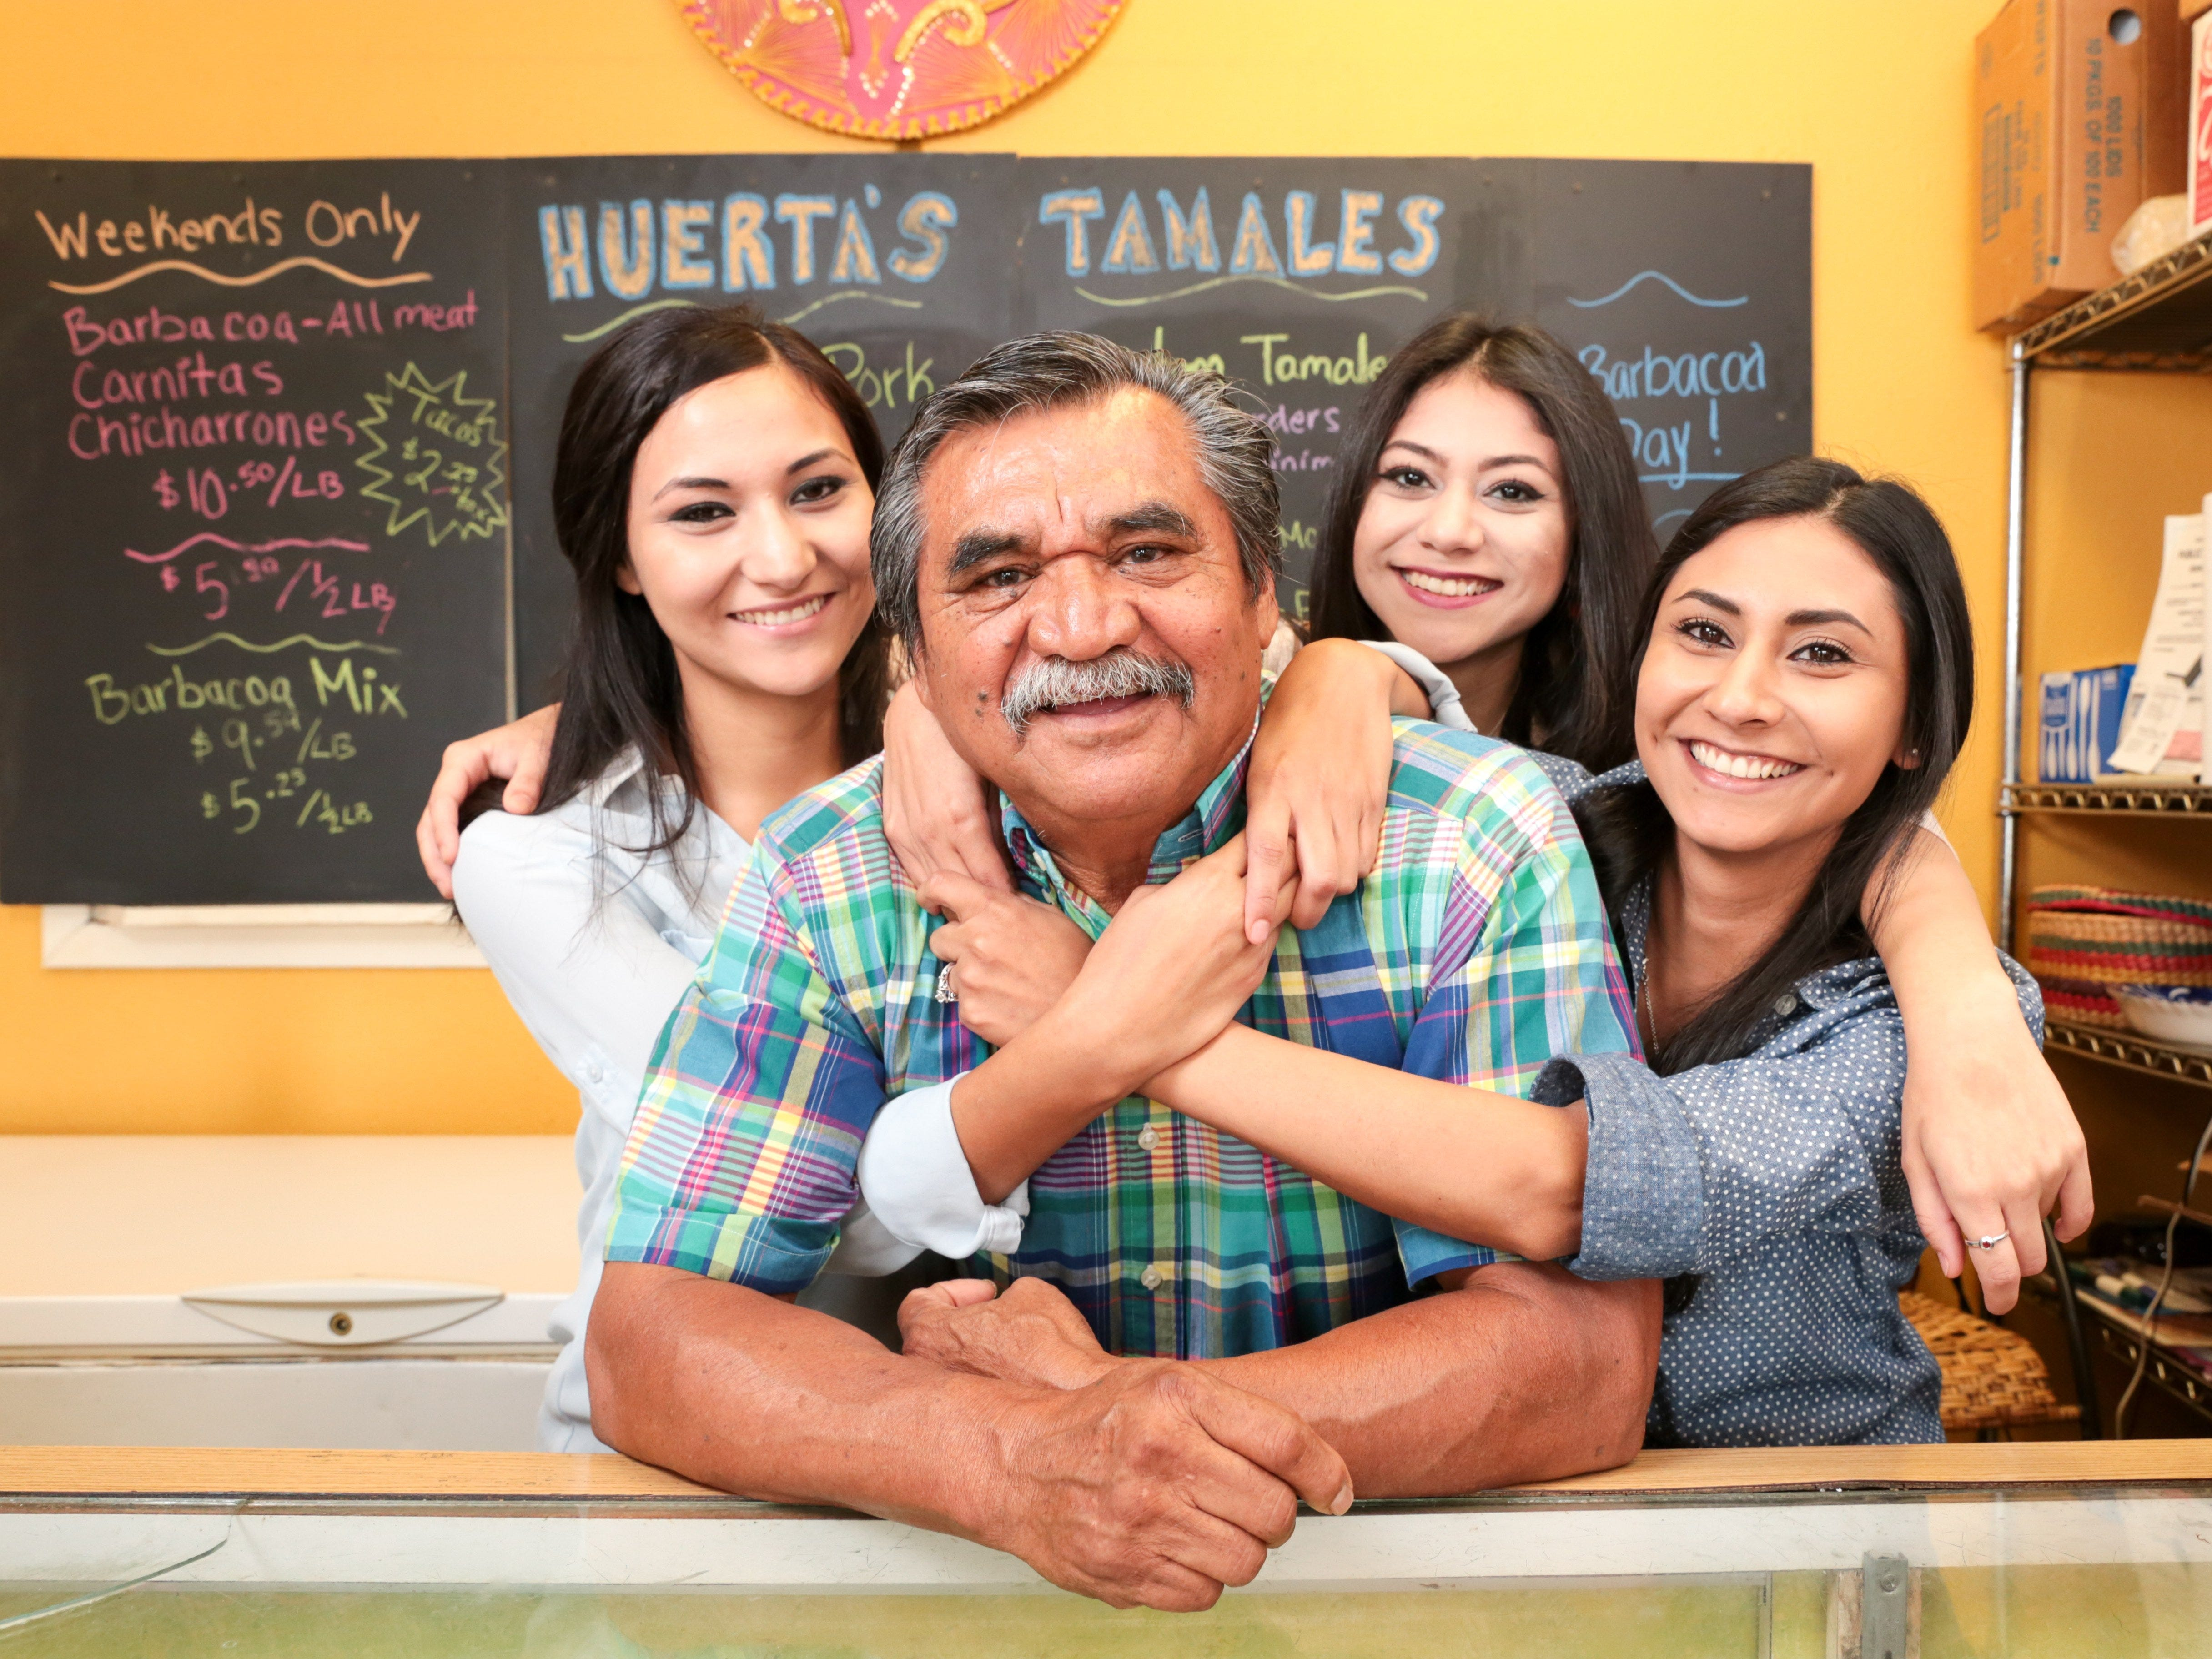 Huerta's Tamales on South Staples Street will close its doors on Dec. 31.  In 2015, Jose Huerta was featured in a Caller-Times Father's Day story with his daughters Samantha, Sarah and Lourdes Huerta.